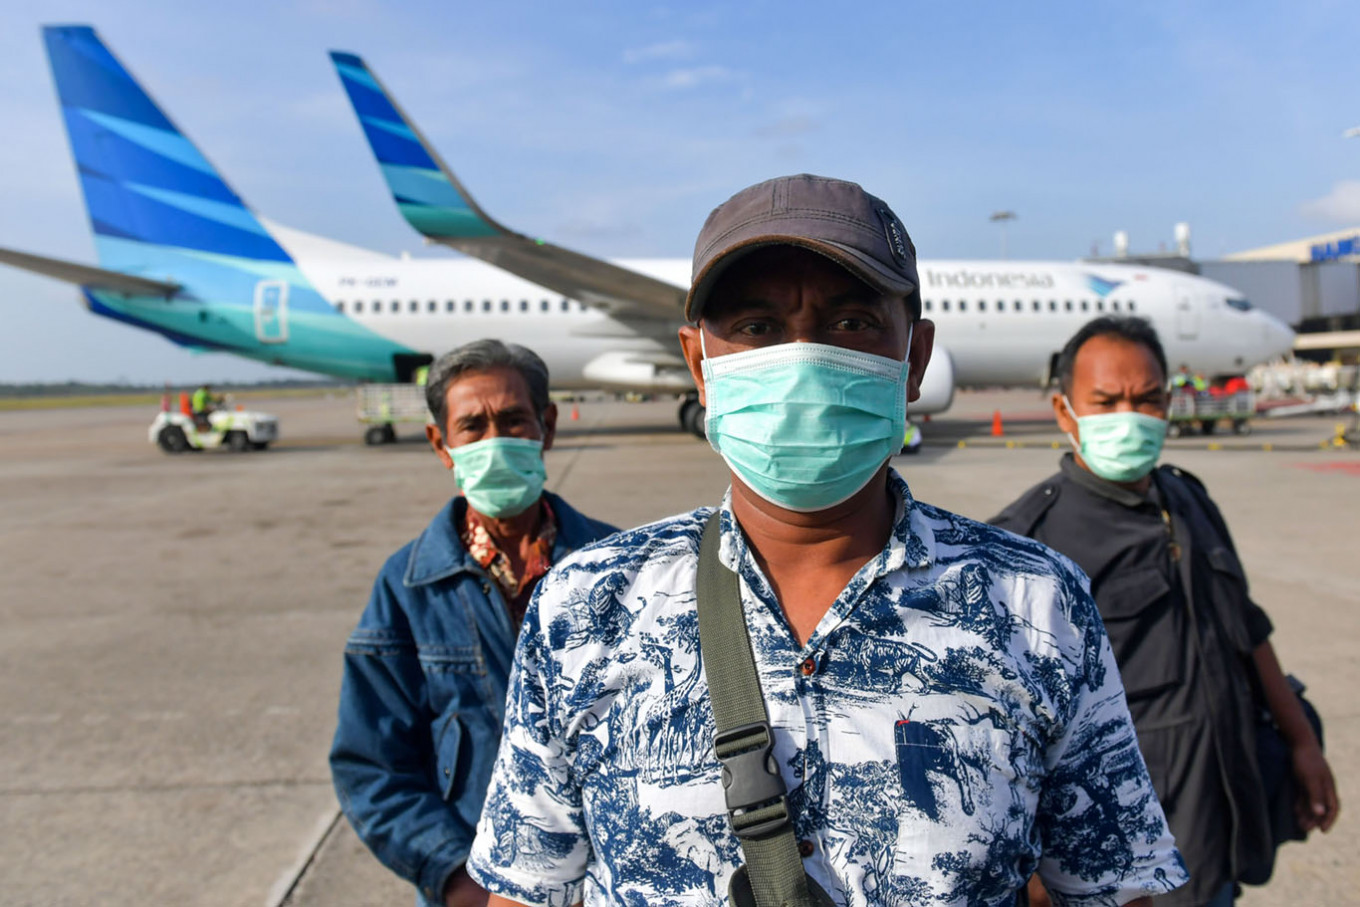 Climate, immunity, incompetence? Indonesia's zero recorded coronavirus cases raise questions